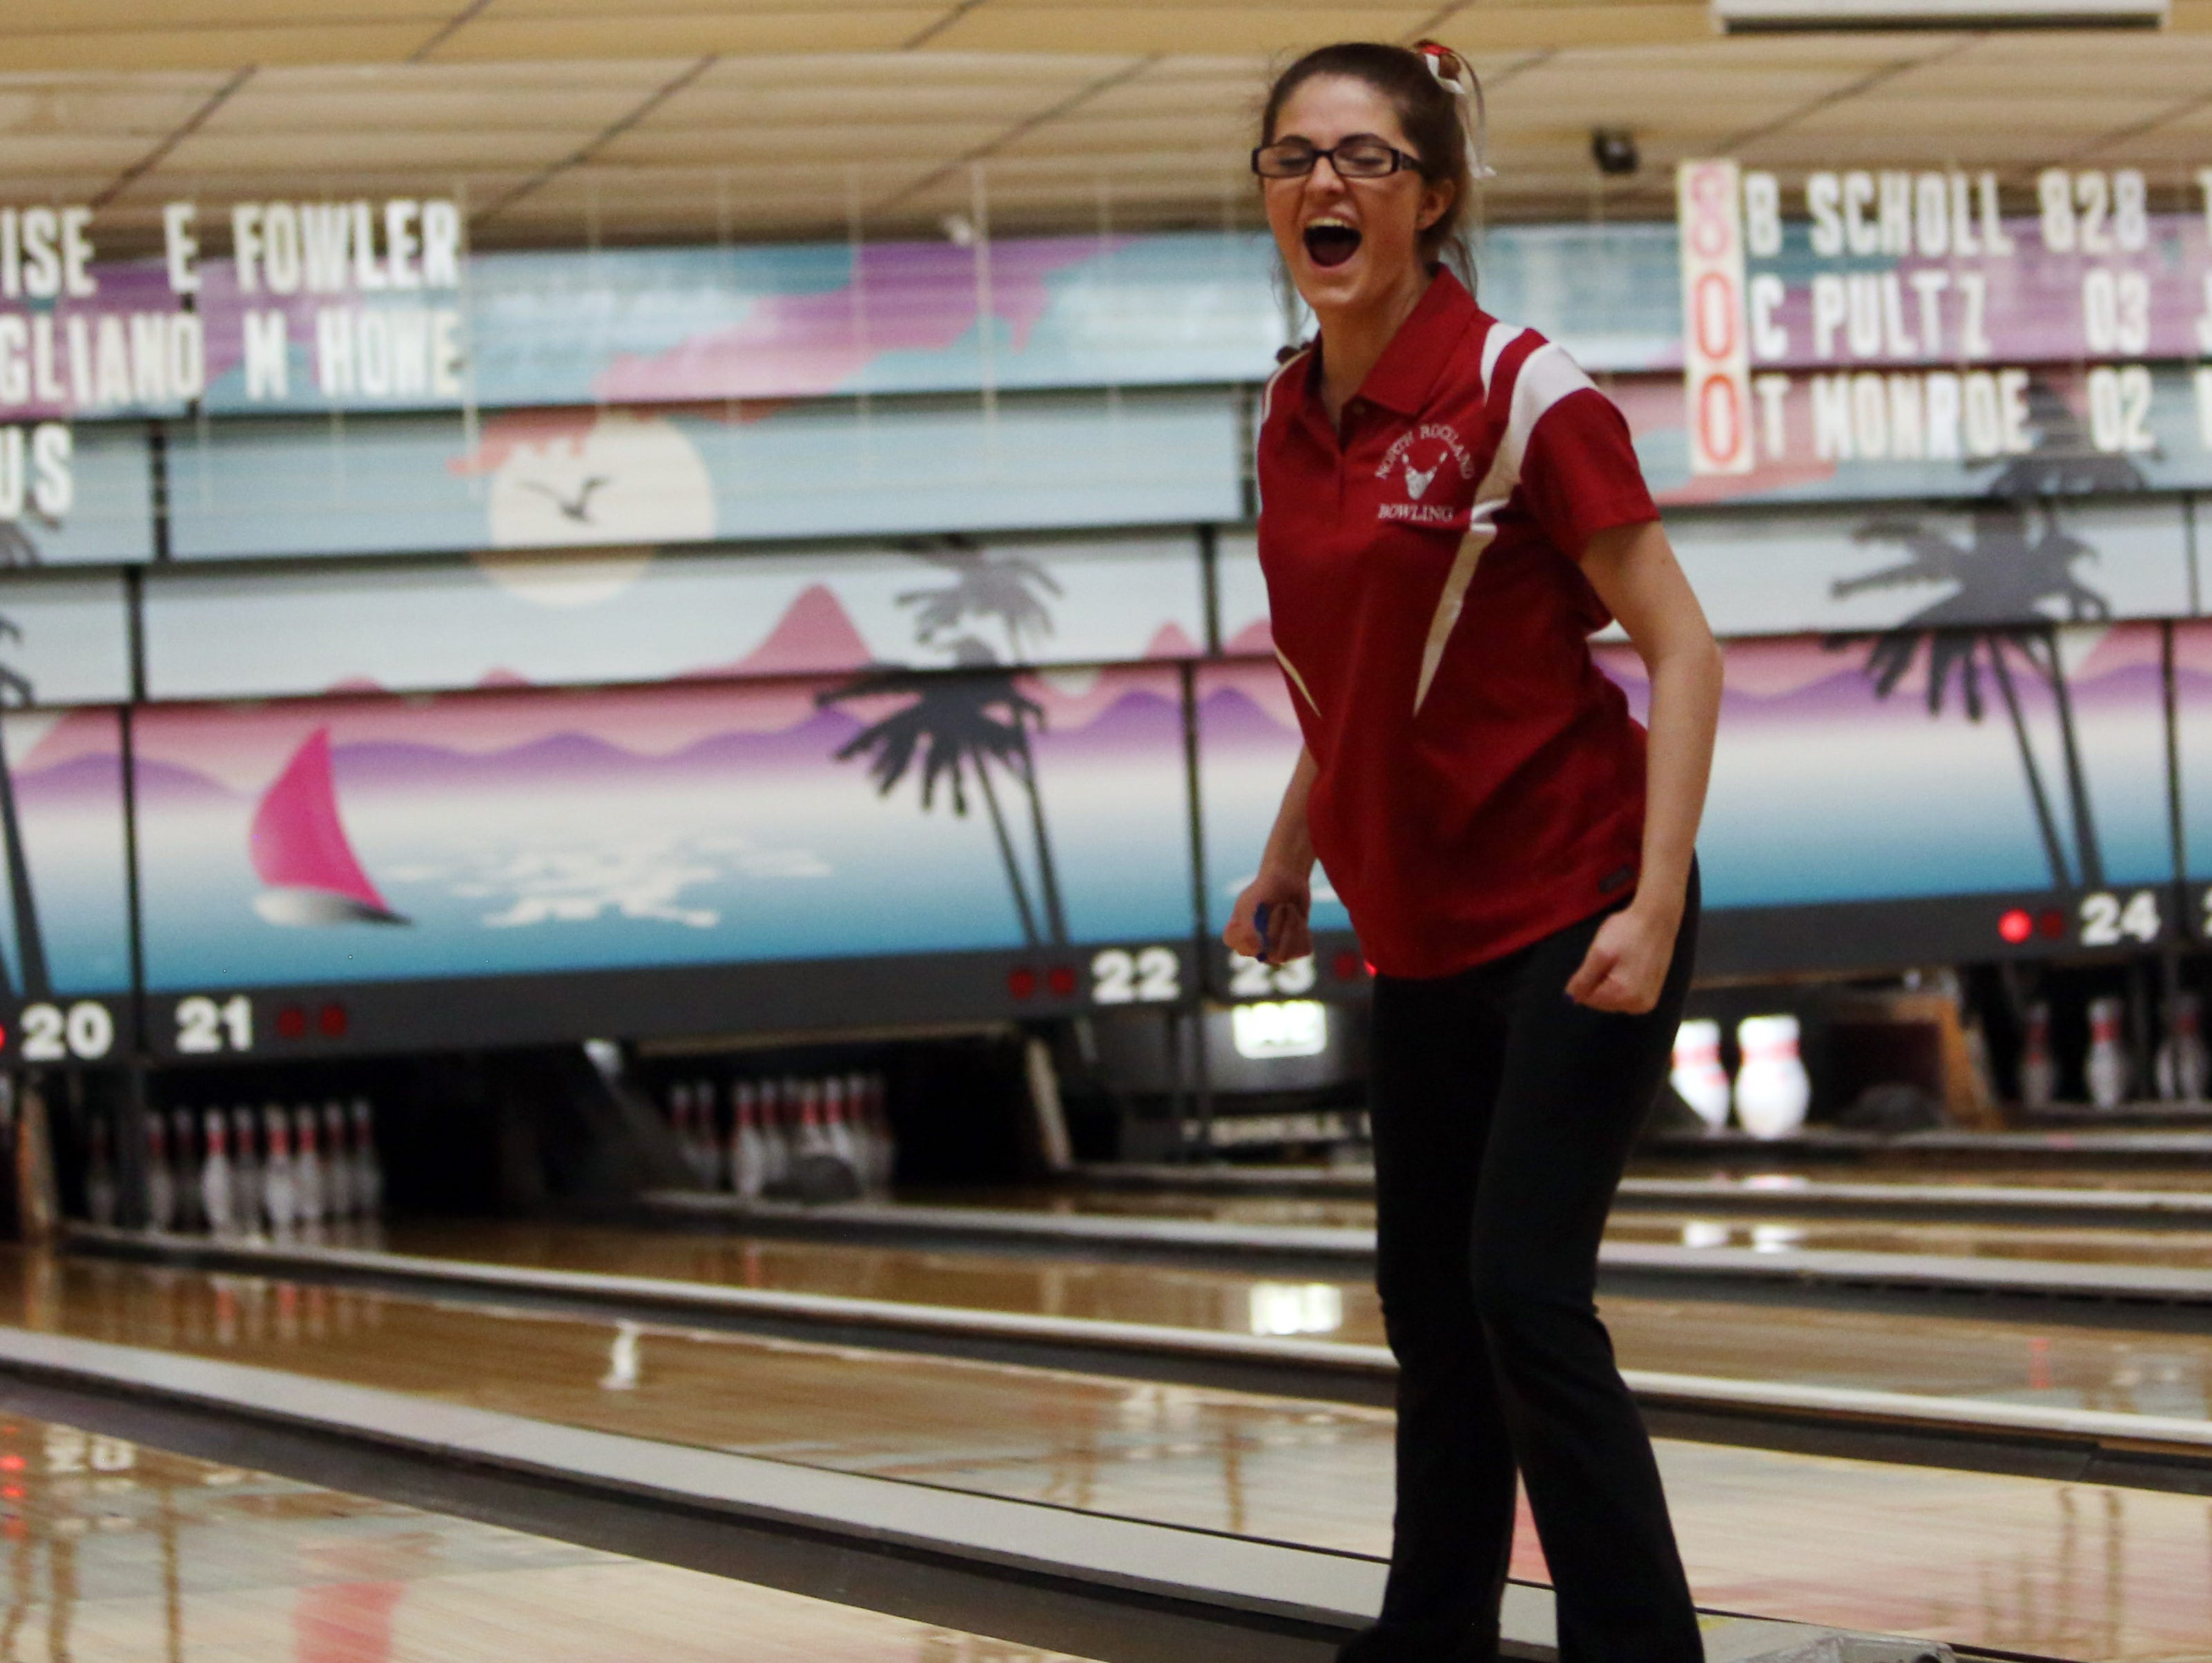 North Rockland's Deanna Jones reacts after a strike during the Section 1 girls bowling tournament at Fishkill Bowl Feb. 10, 2016. North Rockland went on to win the tournament.